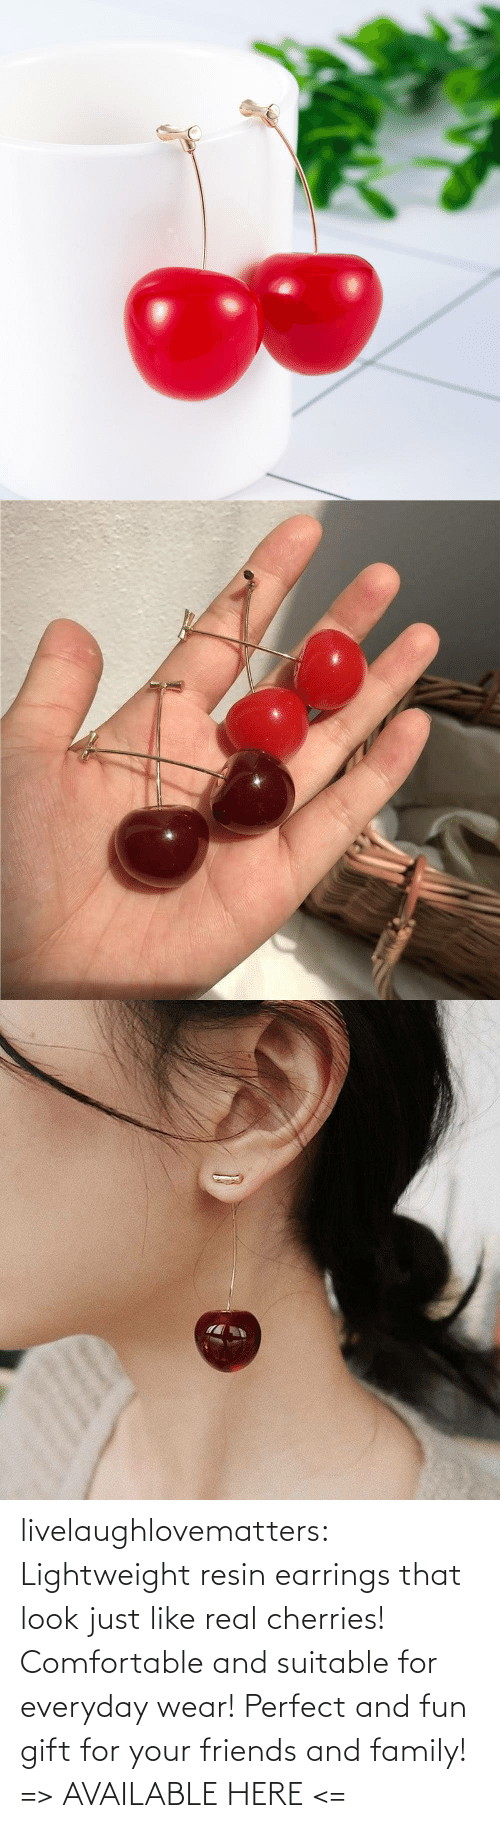 comfortable: livelaughlovematters: Lightweight resin earrings that look just like real cherries! Comfortable and suitable for everyday wear! Perfect and fun gift for your friends and family! => AVAILABLE HERE <=